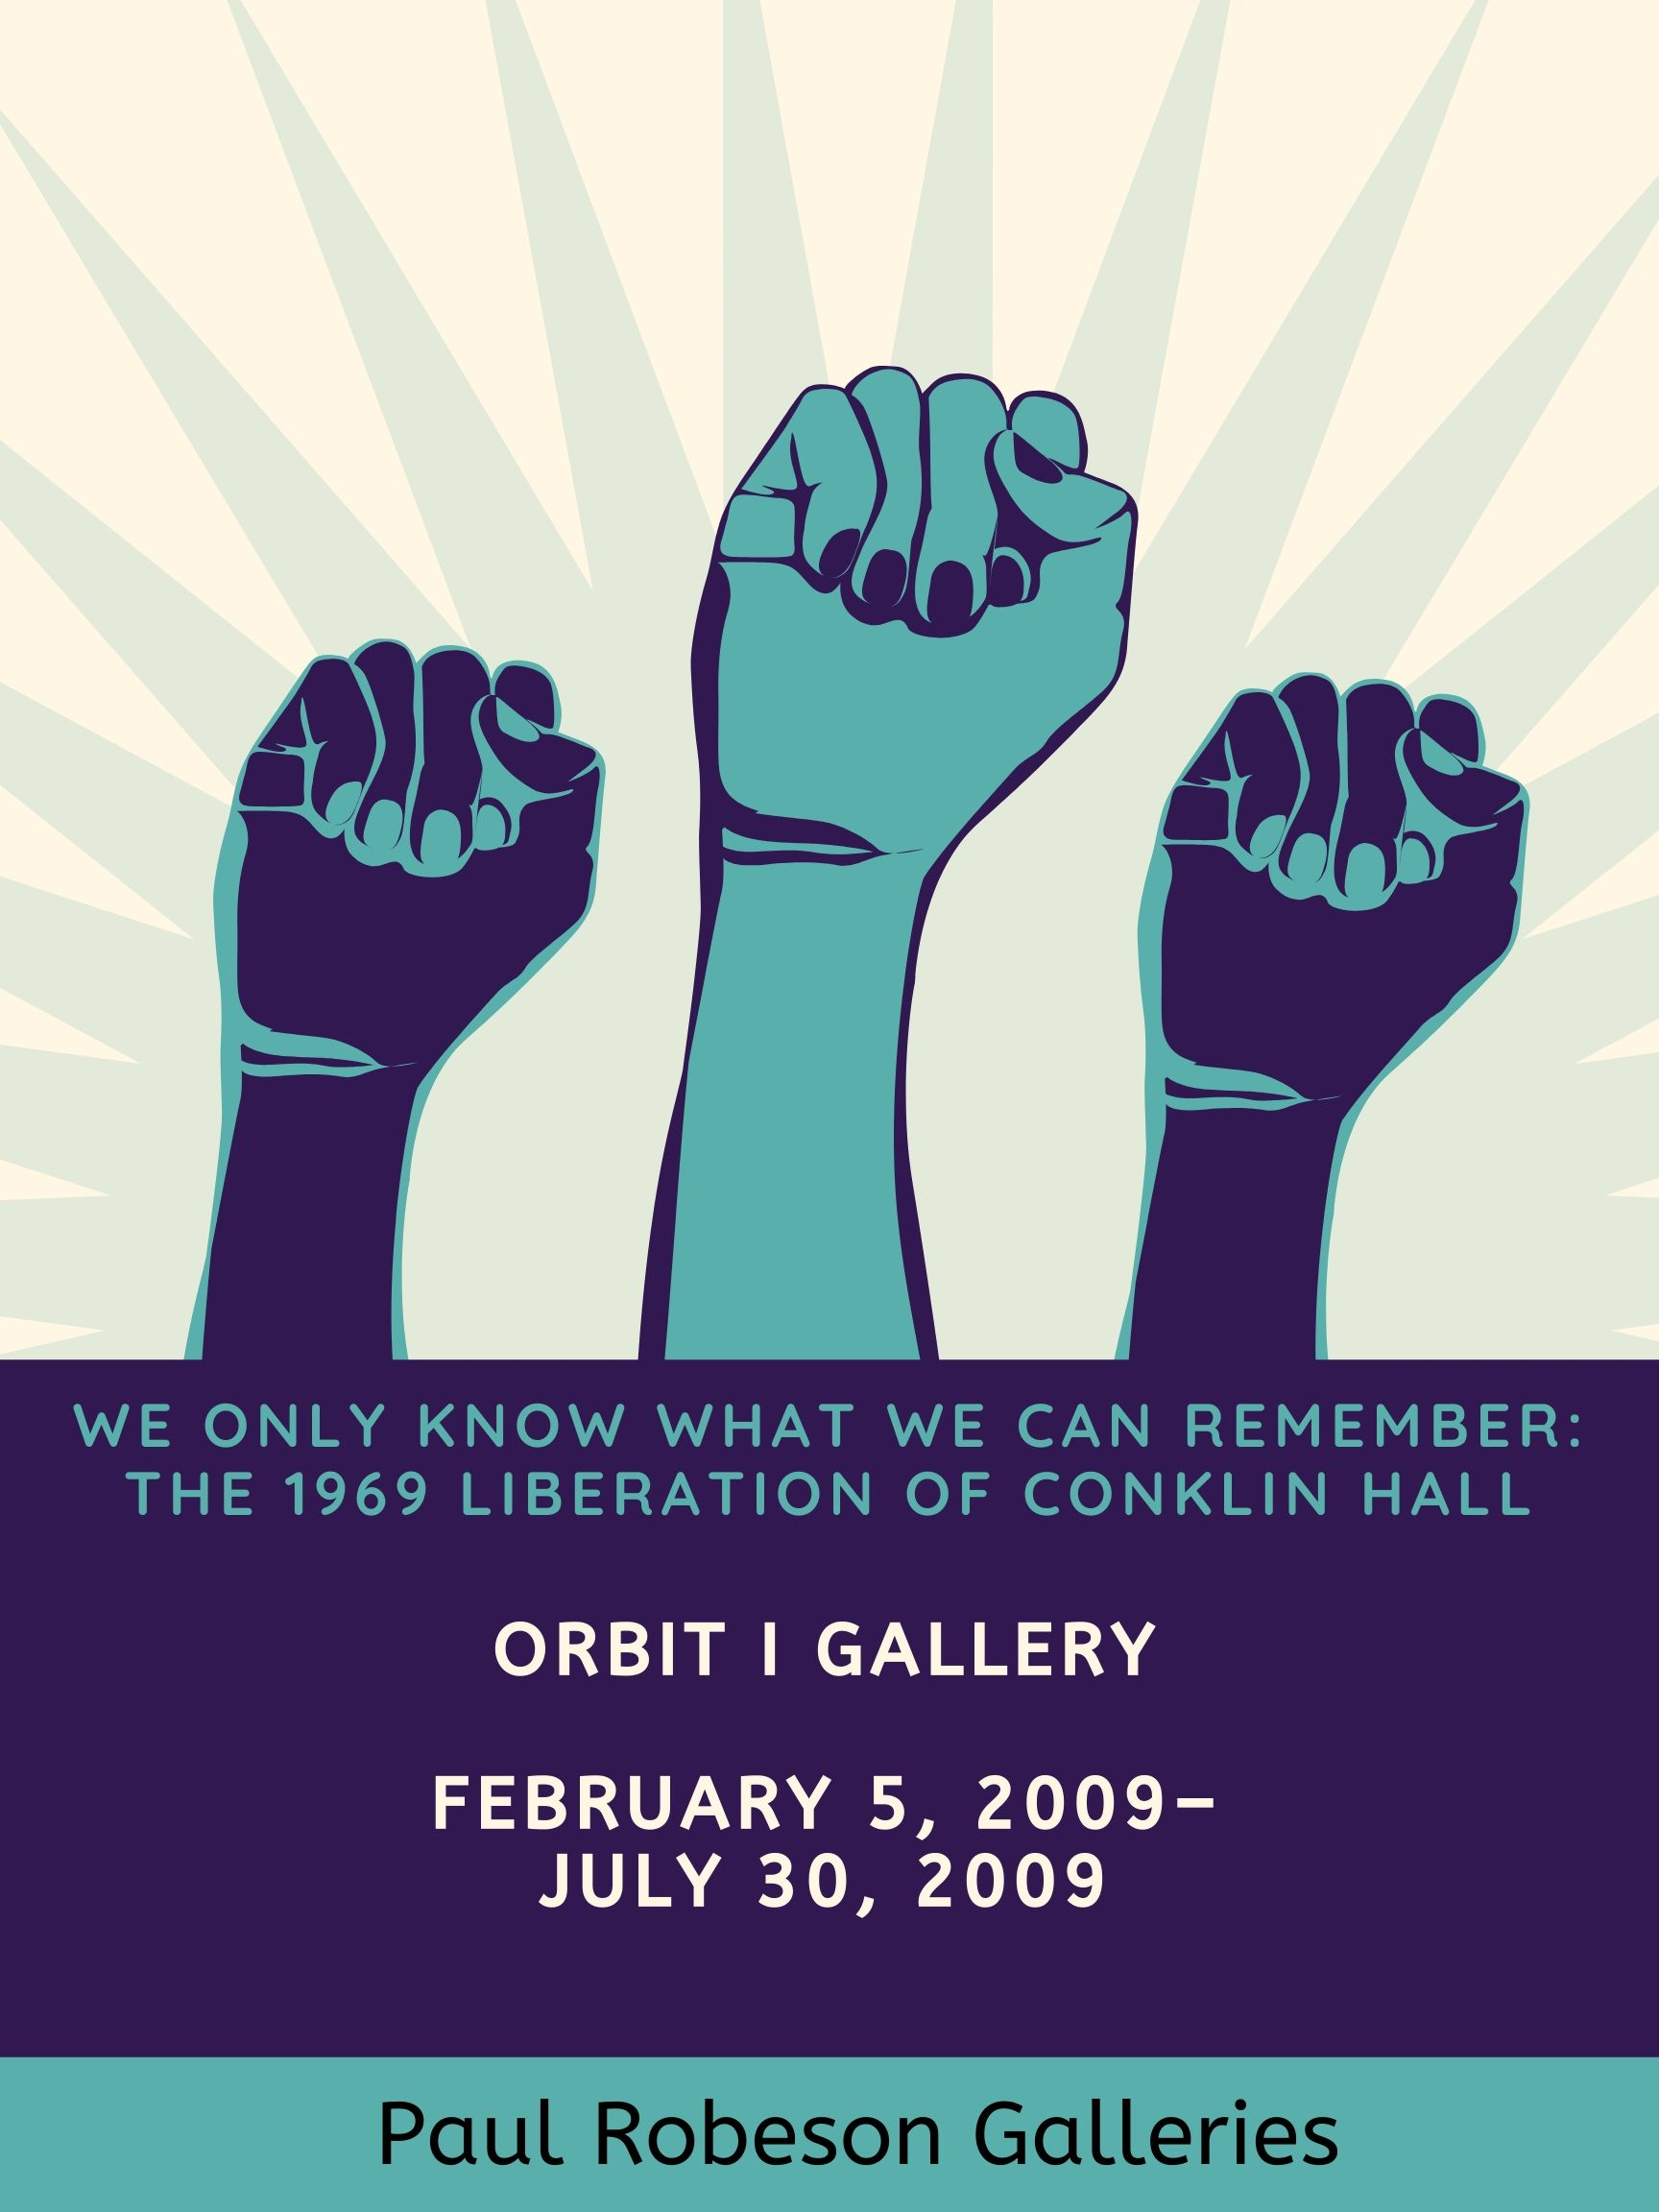 We-Only-Know-What-We-Can-Remember_-The-1969-Liberation-of-Conklin-Hall Flyer